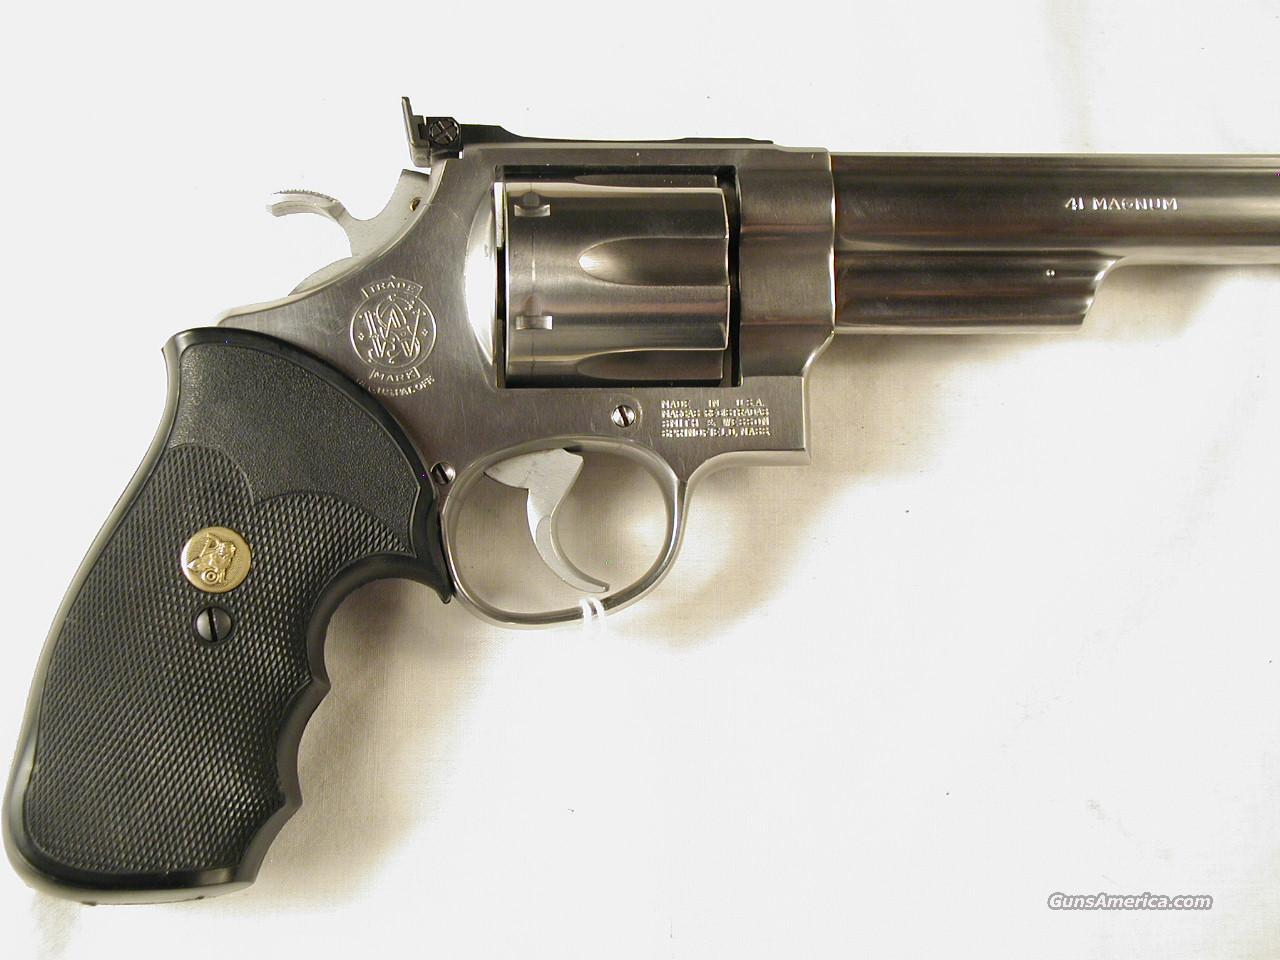 41 MAGNUM CUSTOM 657  Guns > Pistols > Smith & Wesson Revolvers > Full Frame Revolver